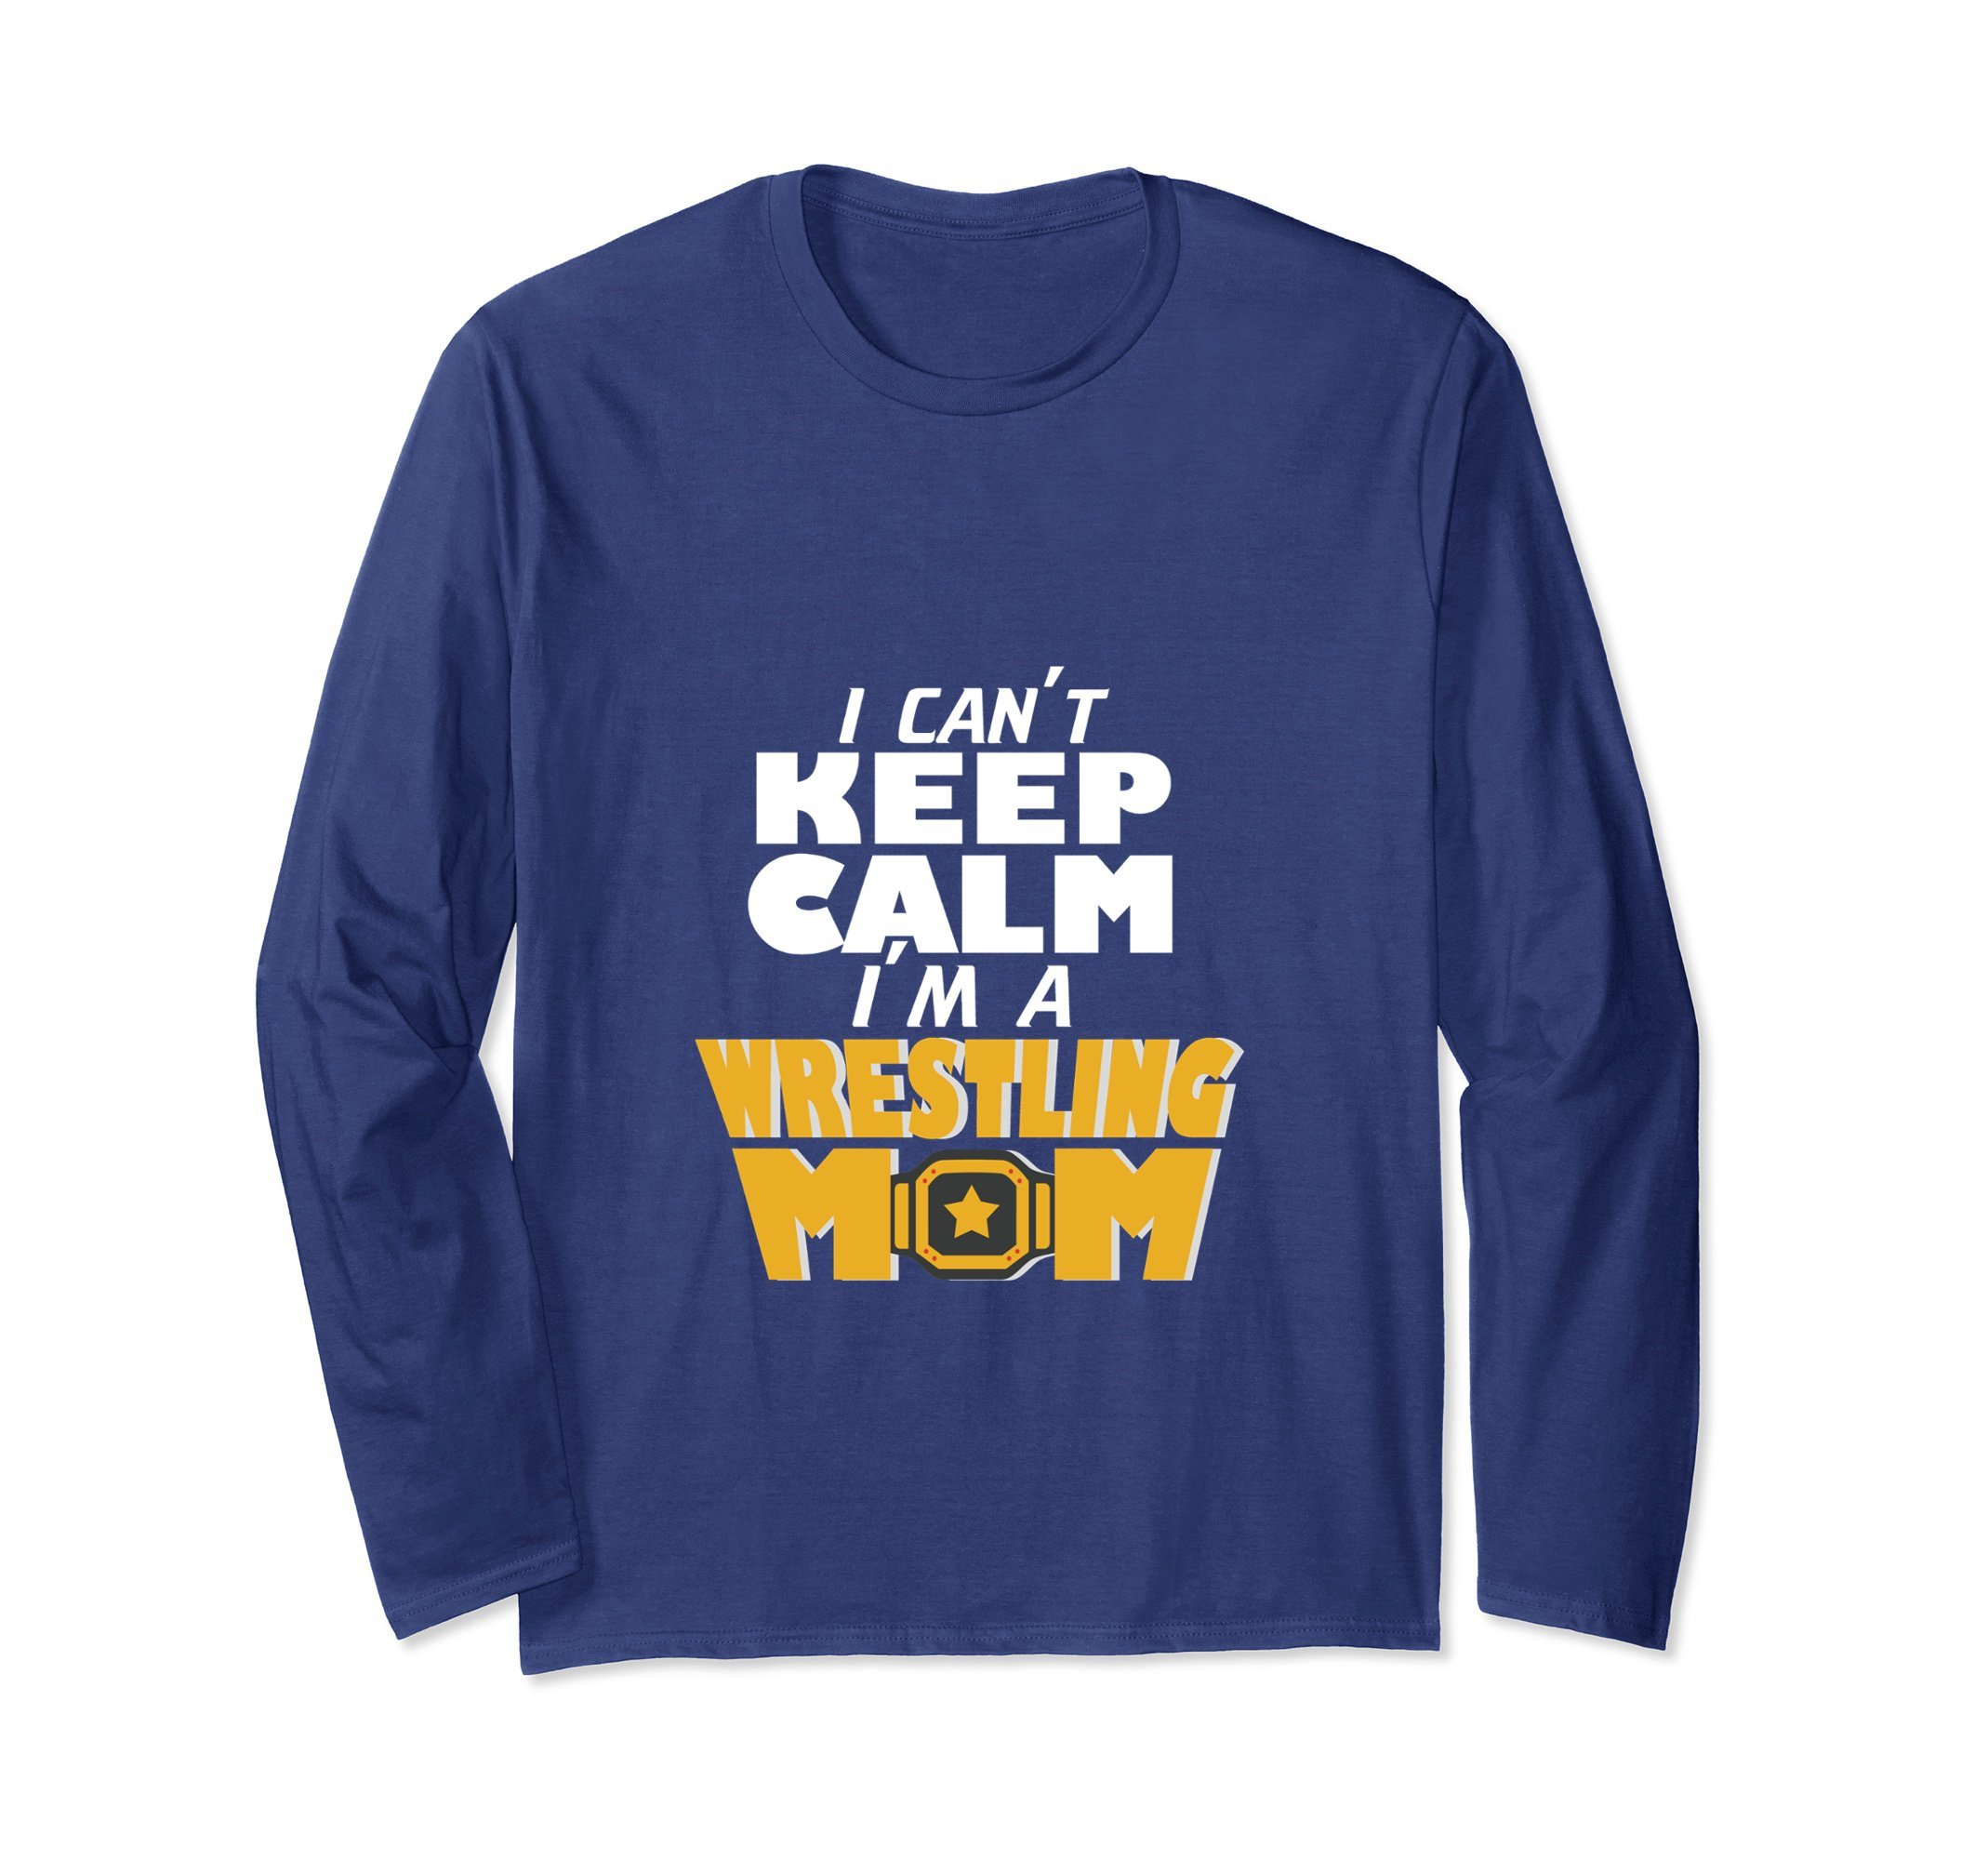 Unisex I Can't Keep Calm I'm A Wrestling Mom T-shirt. Small Navy